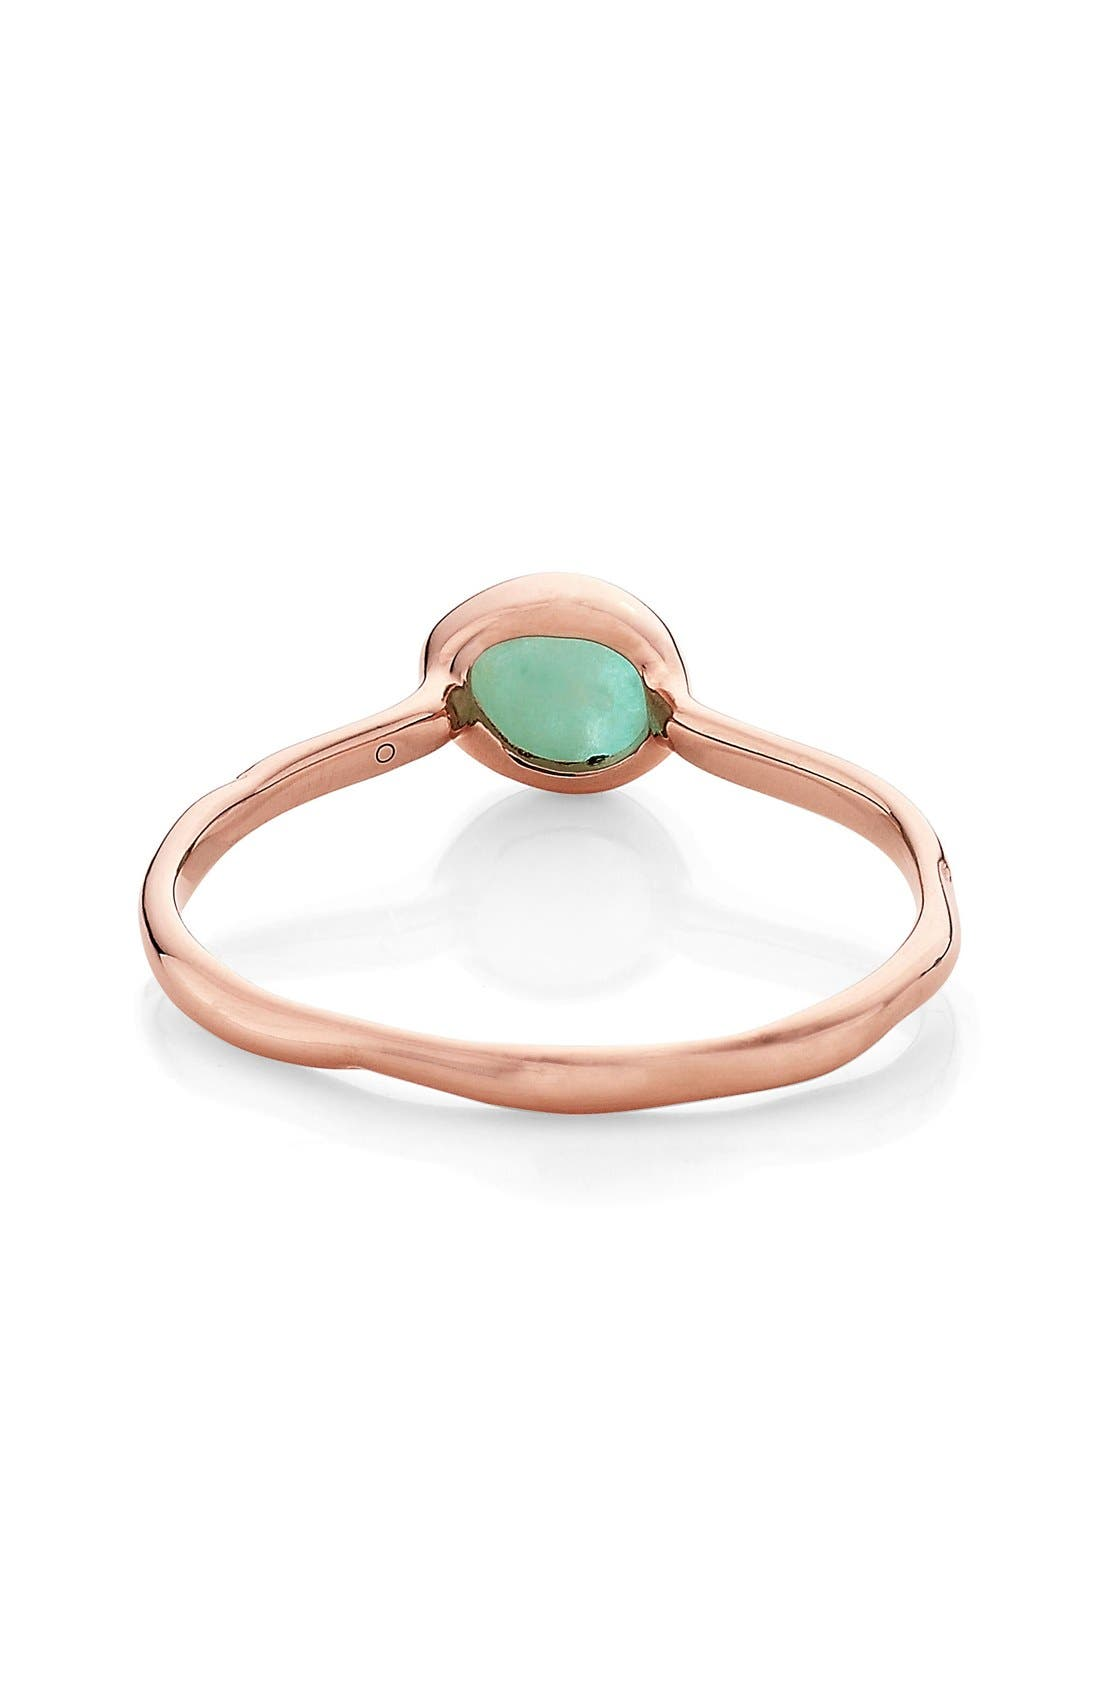 'Siren' Small Stacking Ring,                             Alternate thumbnail 3, color,                             Amazonite/ Rose Gold